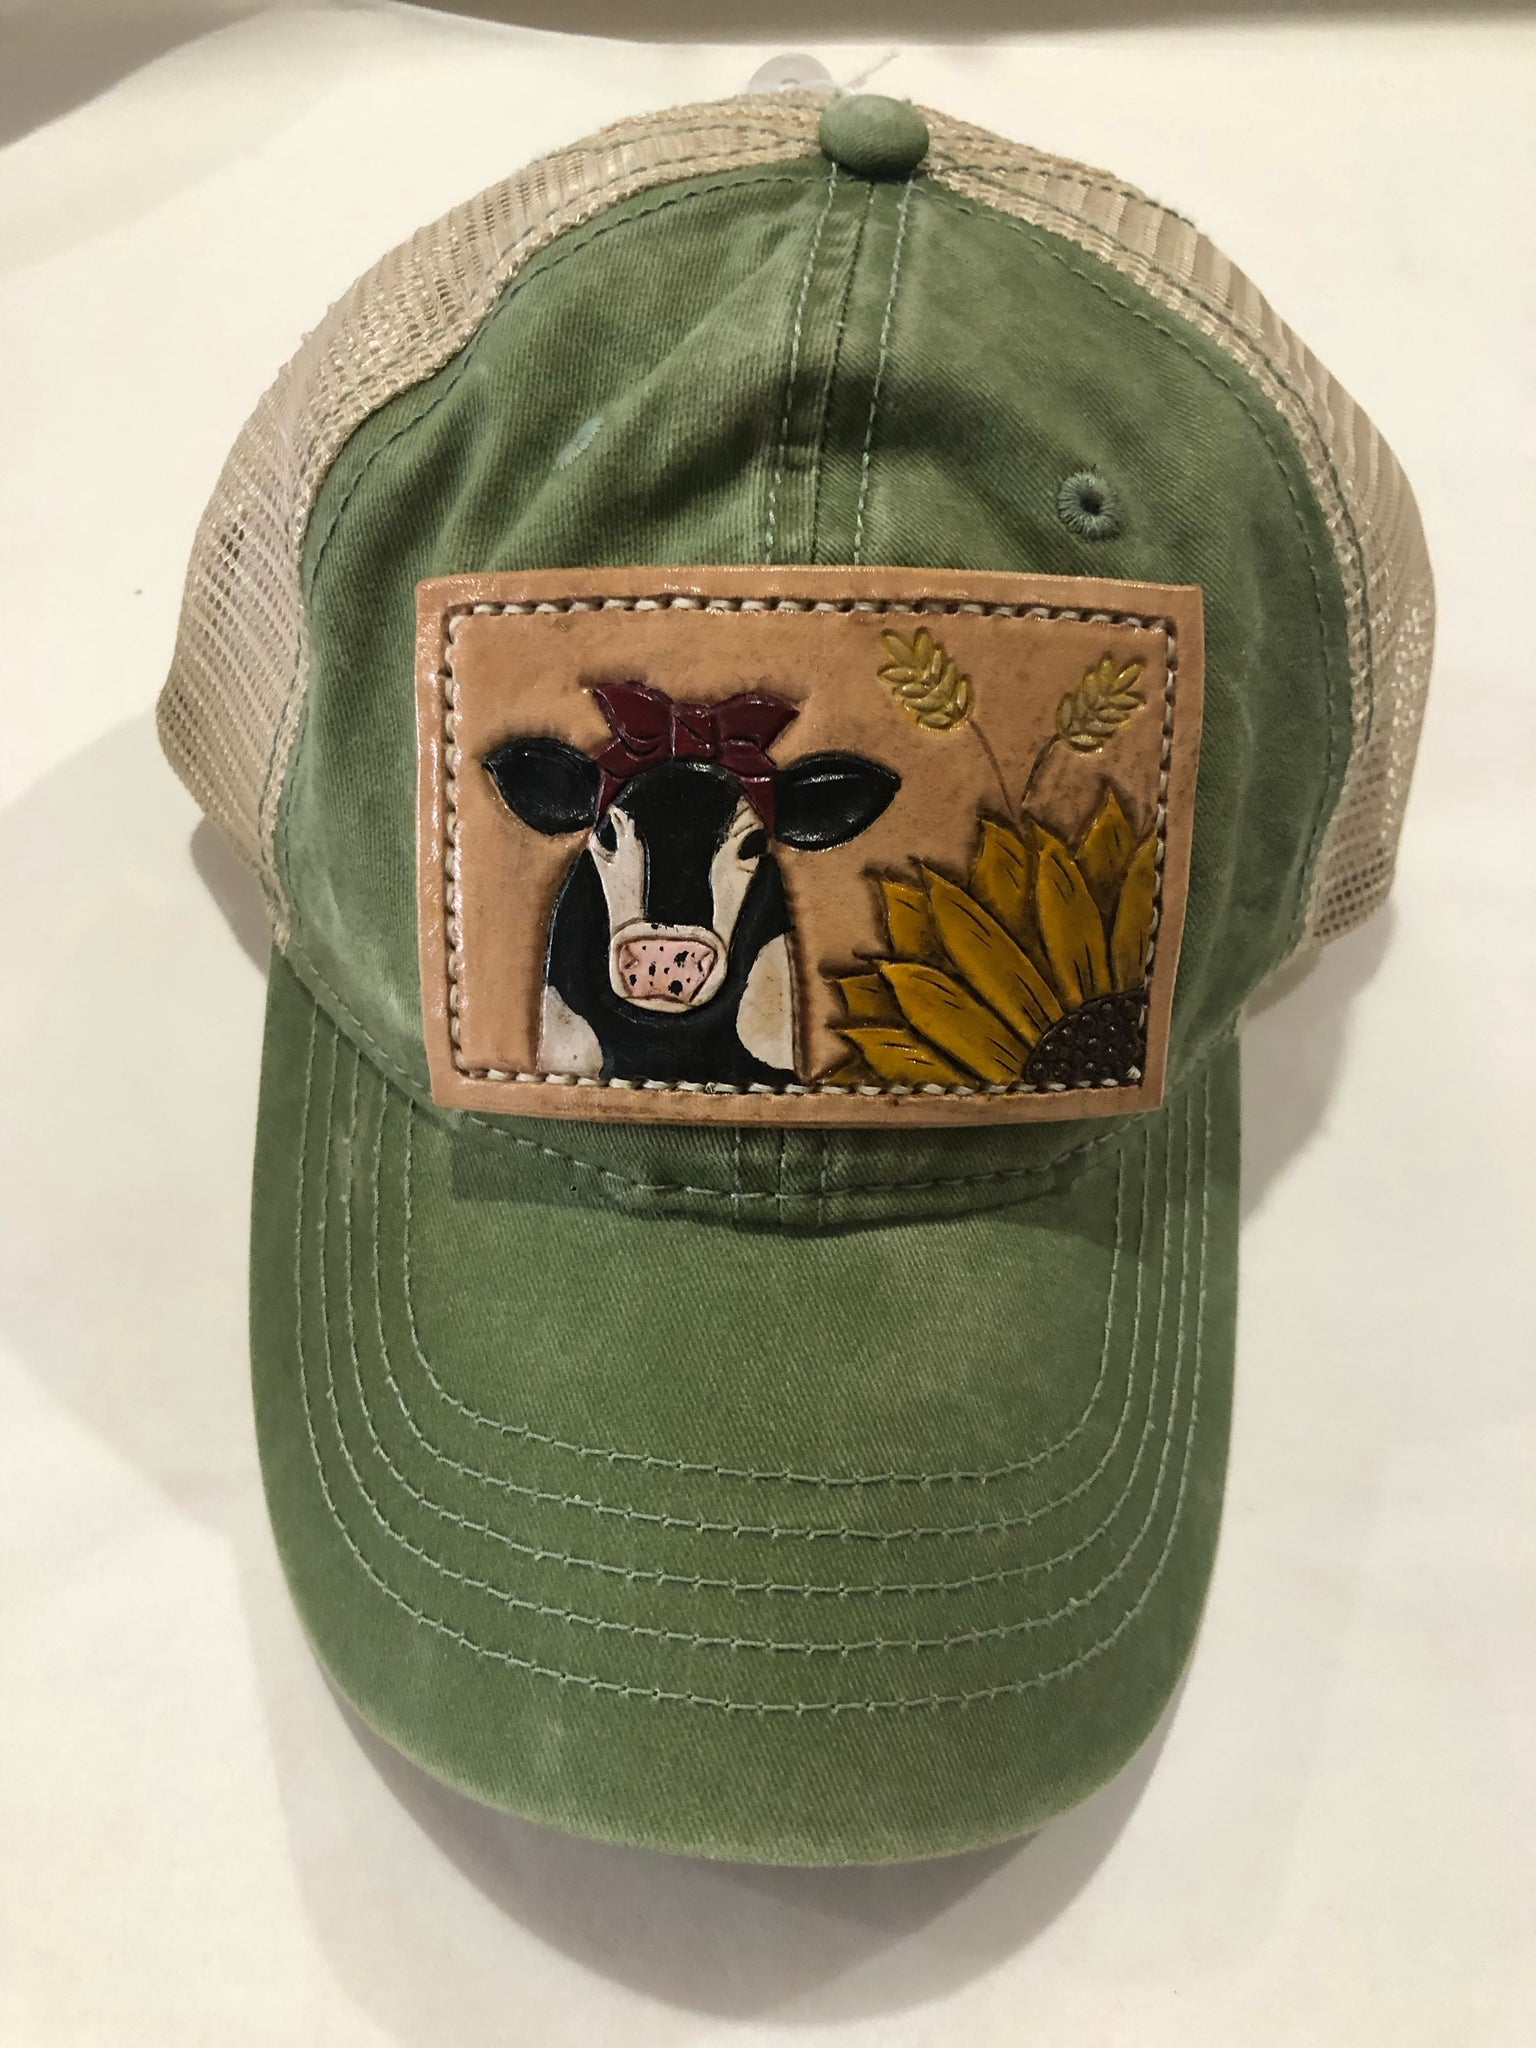 Green hat with cow